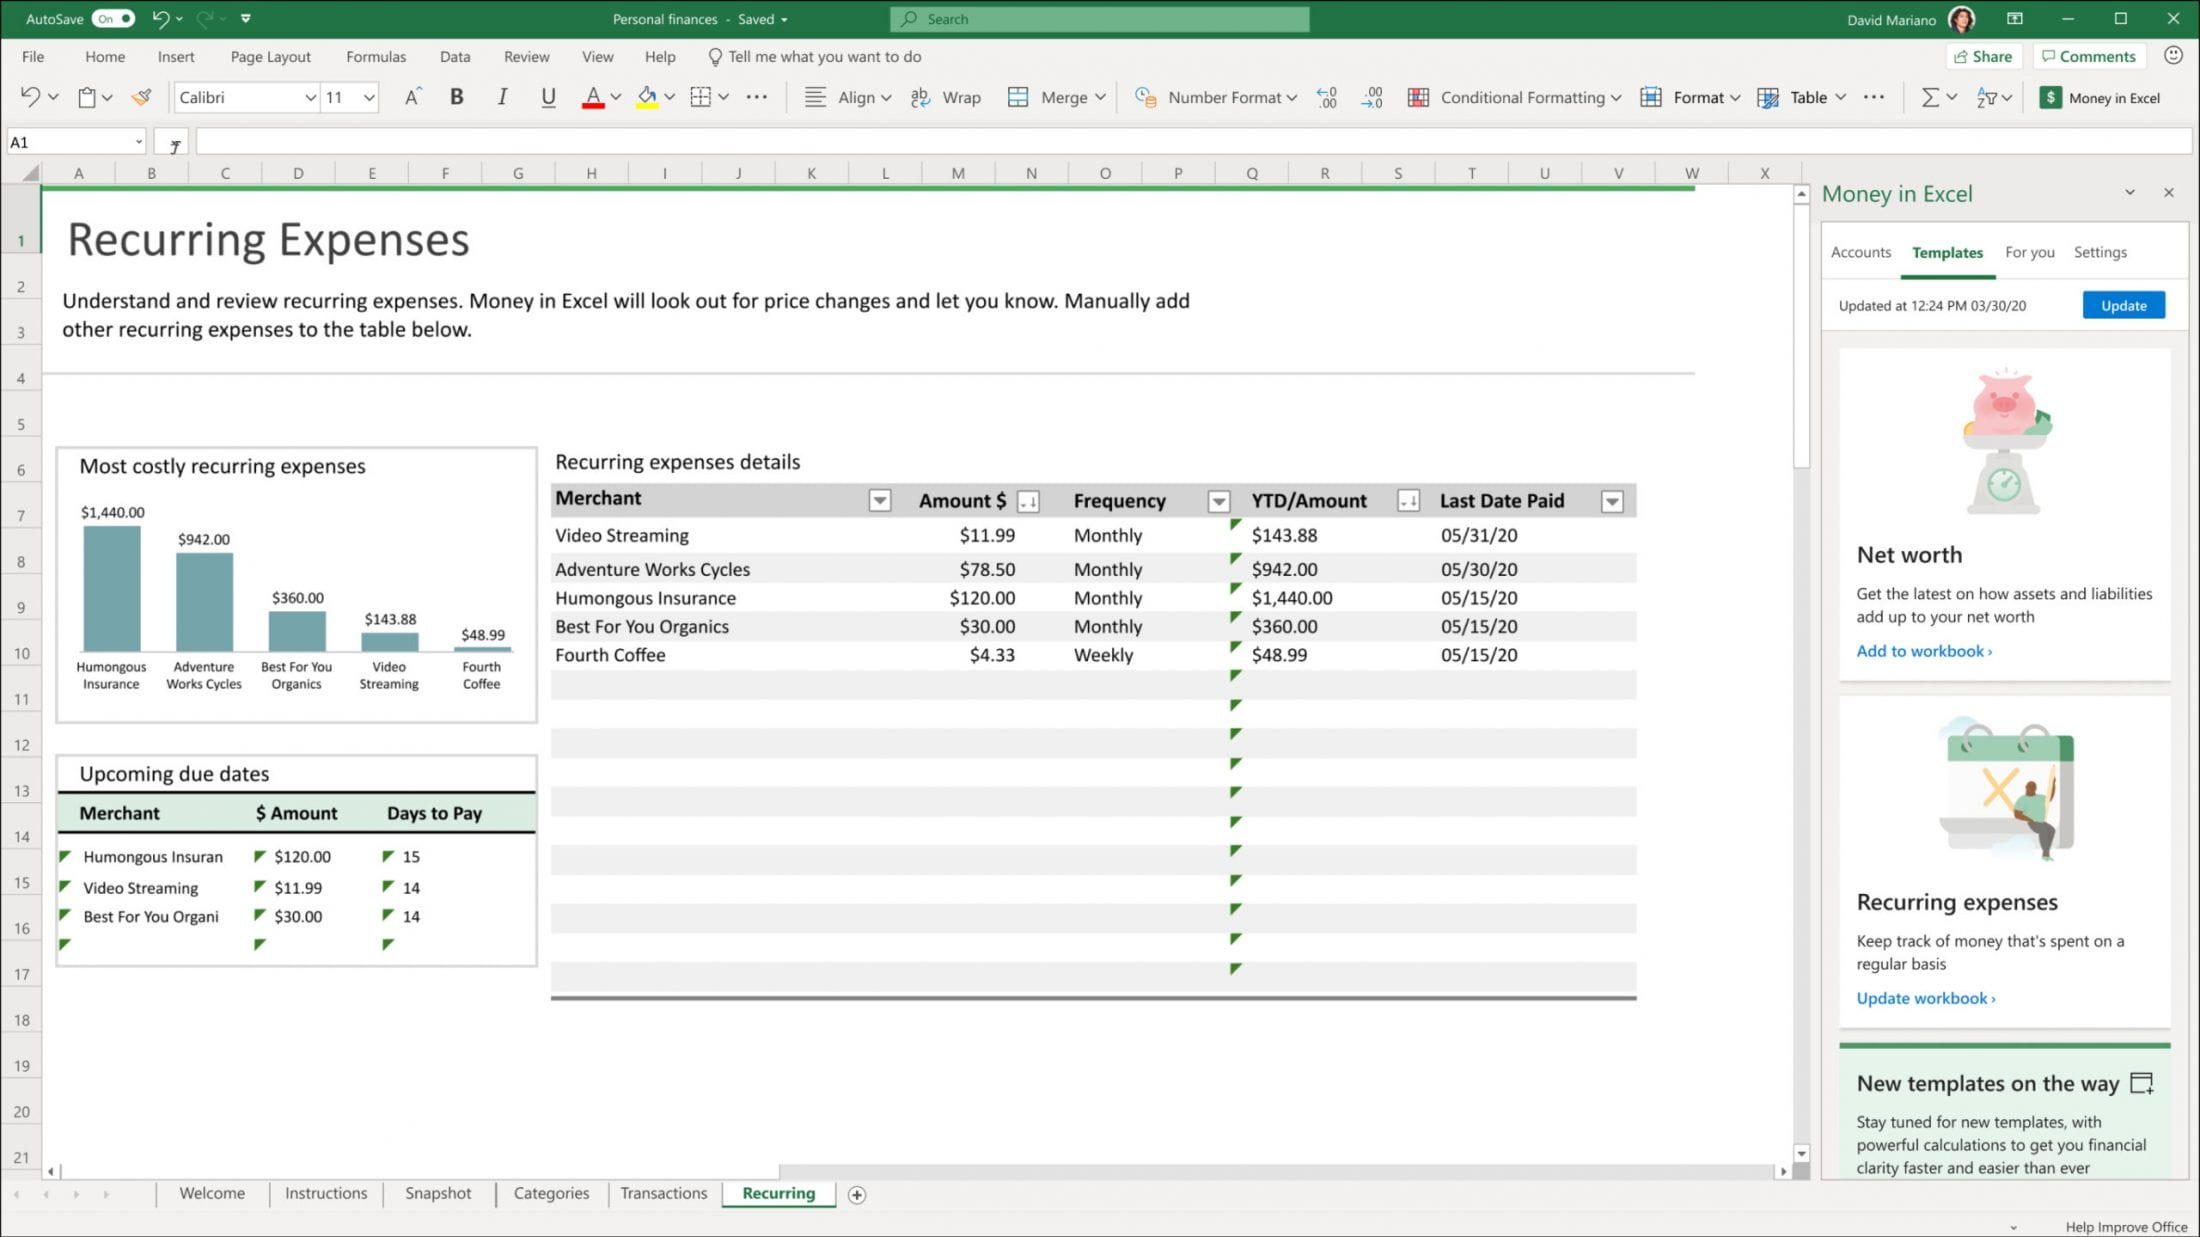 An image of recurring expenses using graphs and tables within Excel.